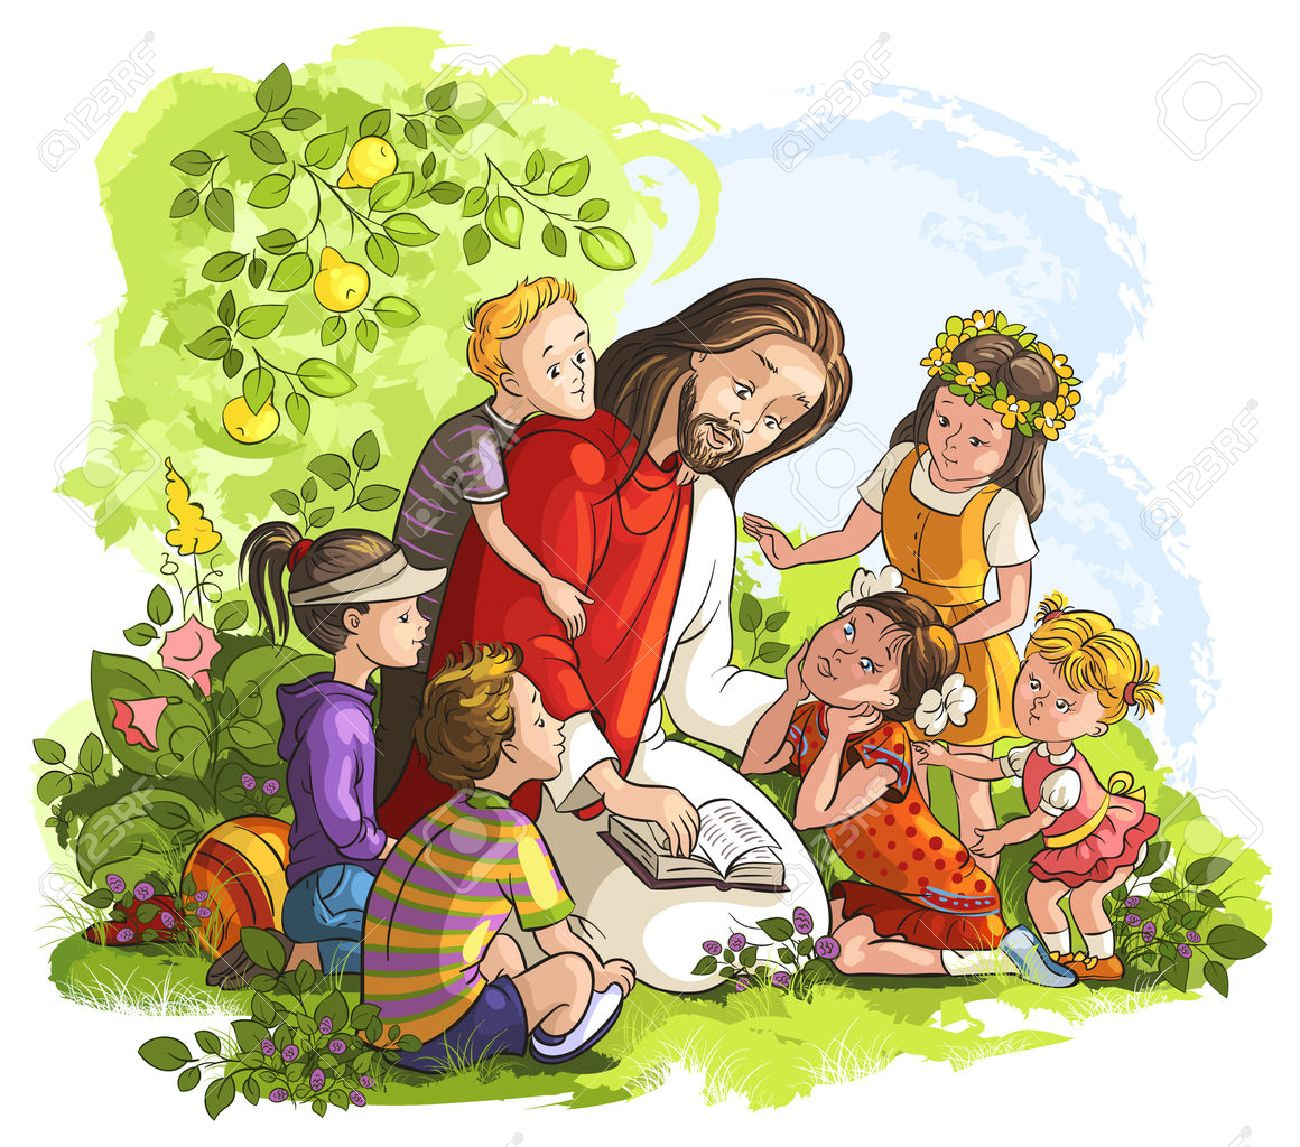 Vector illustration for Jesus reading the Bible with Children - 27529459